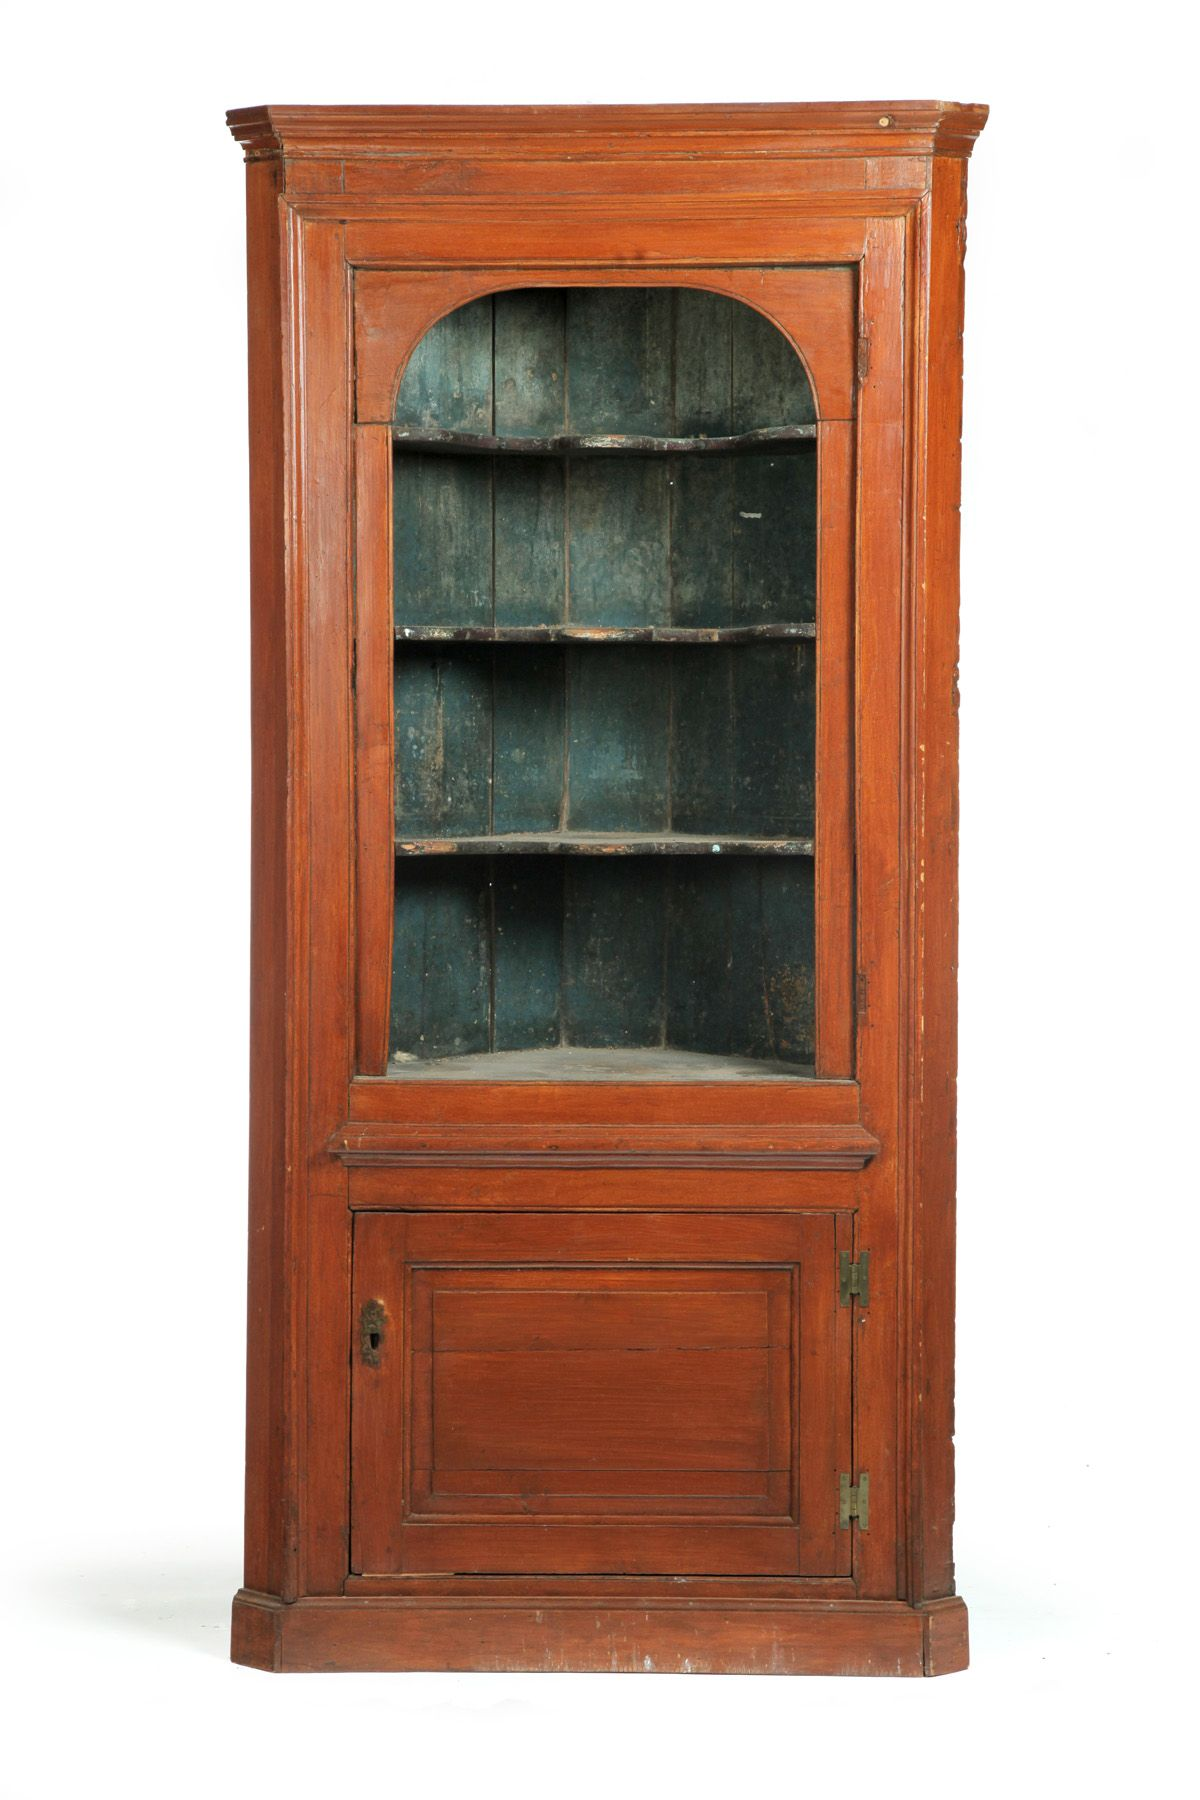 Garth S Auctioneers Appraisers America S Most Trusted Auction House Early American Furniture Corner Cupboard Antique Collection